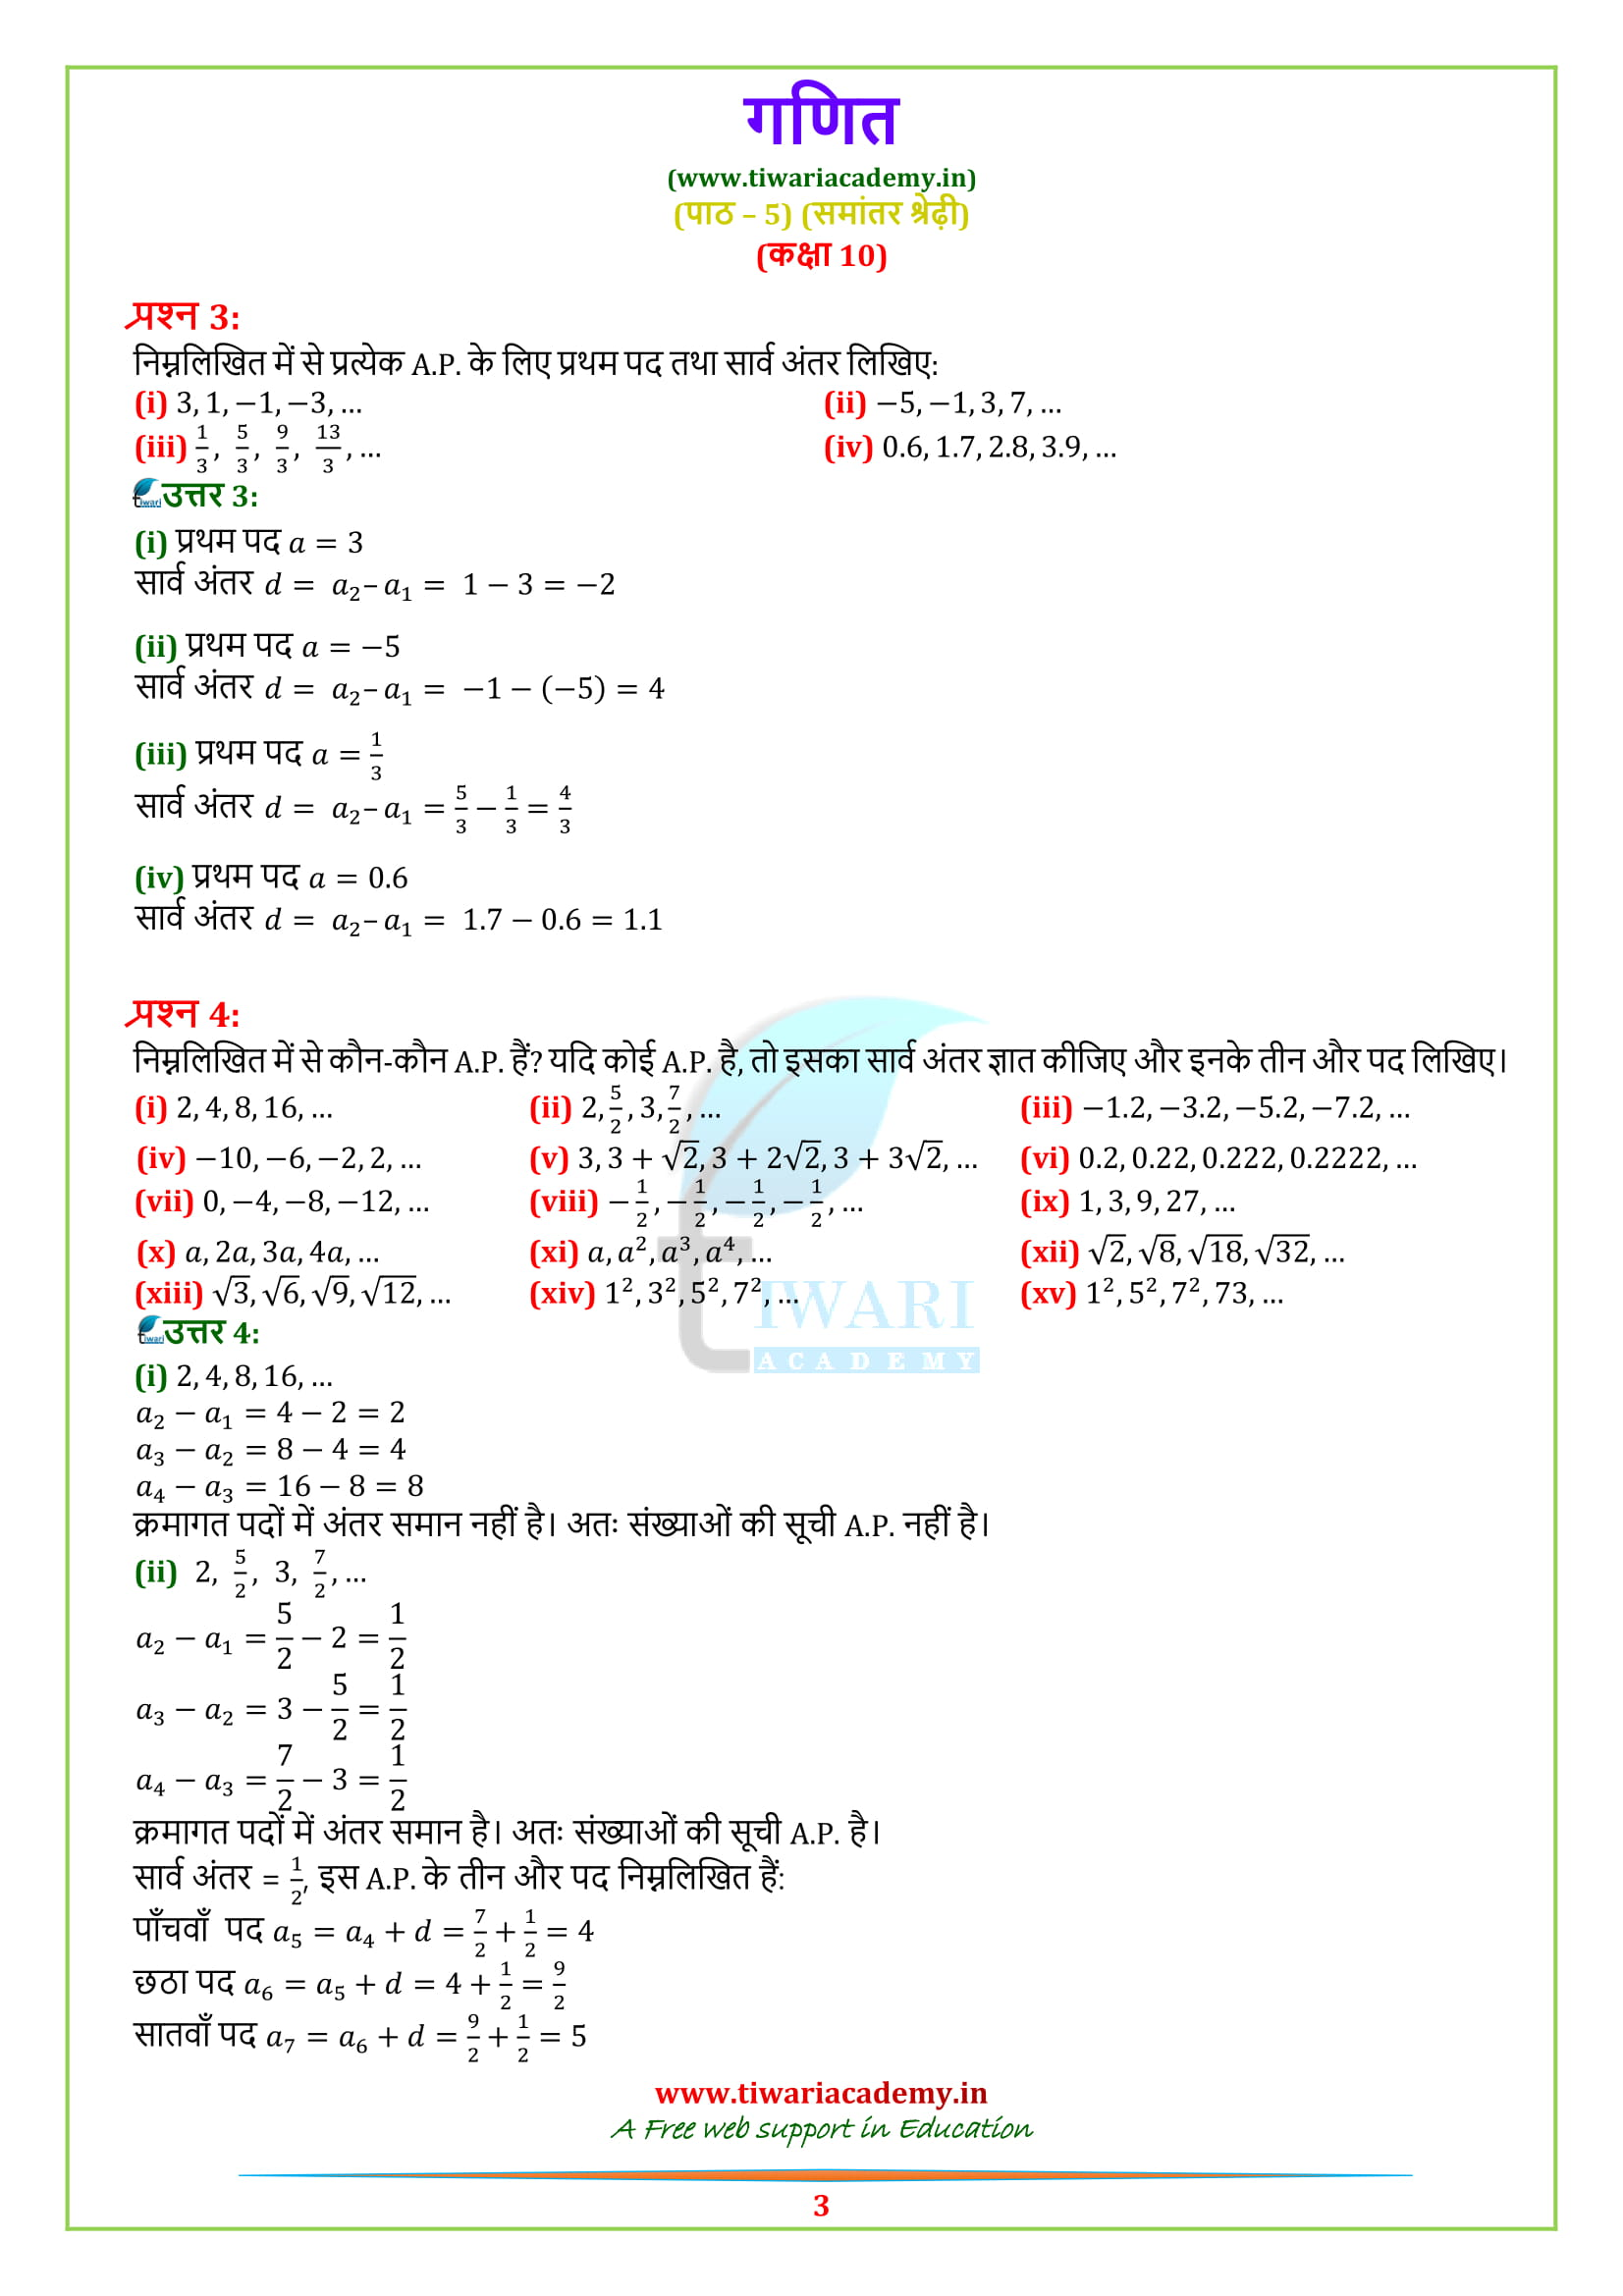 Class 10 Maths Exercise 5.1 Solutions updated for 2018-19.